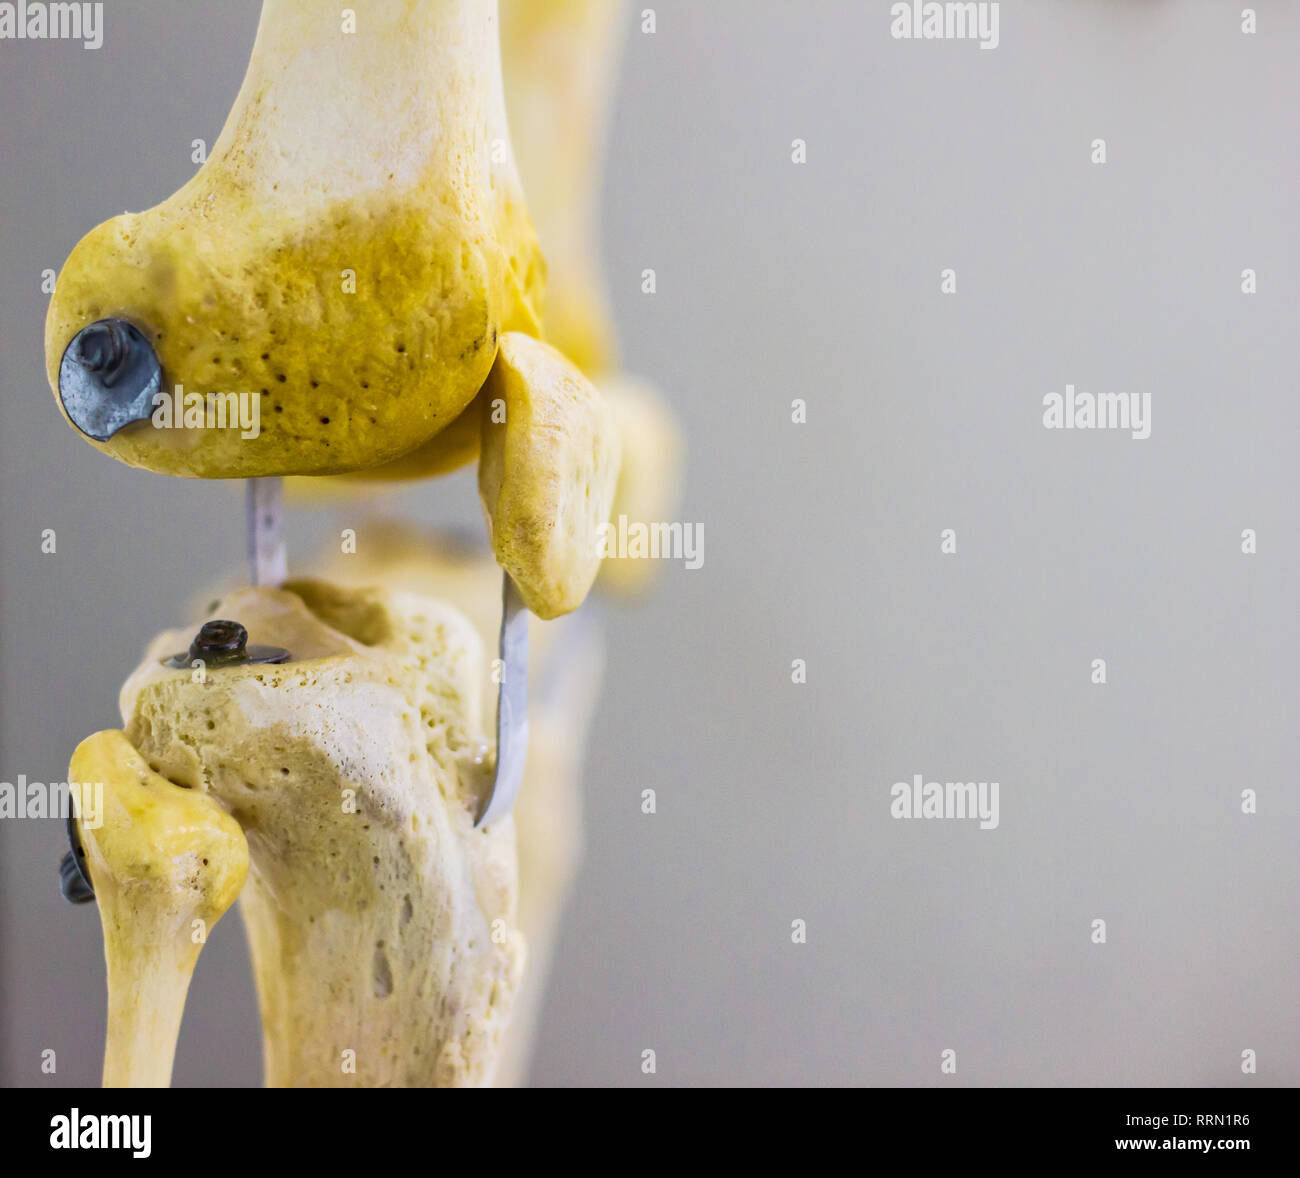 lateral side view of articulated femur tibia fibula patella bones showing human knee joint anatomy in isolated white background with space for text - Stock Image